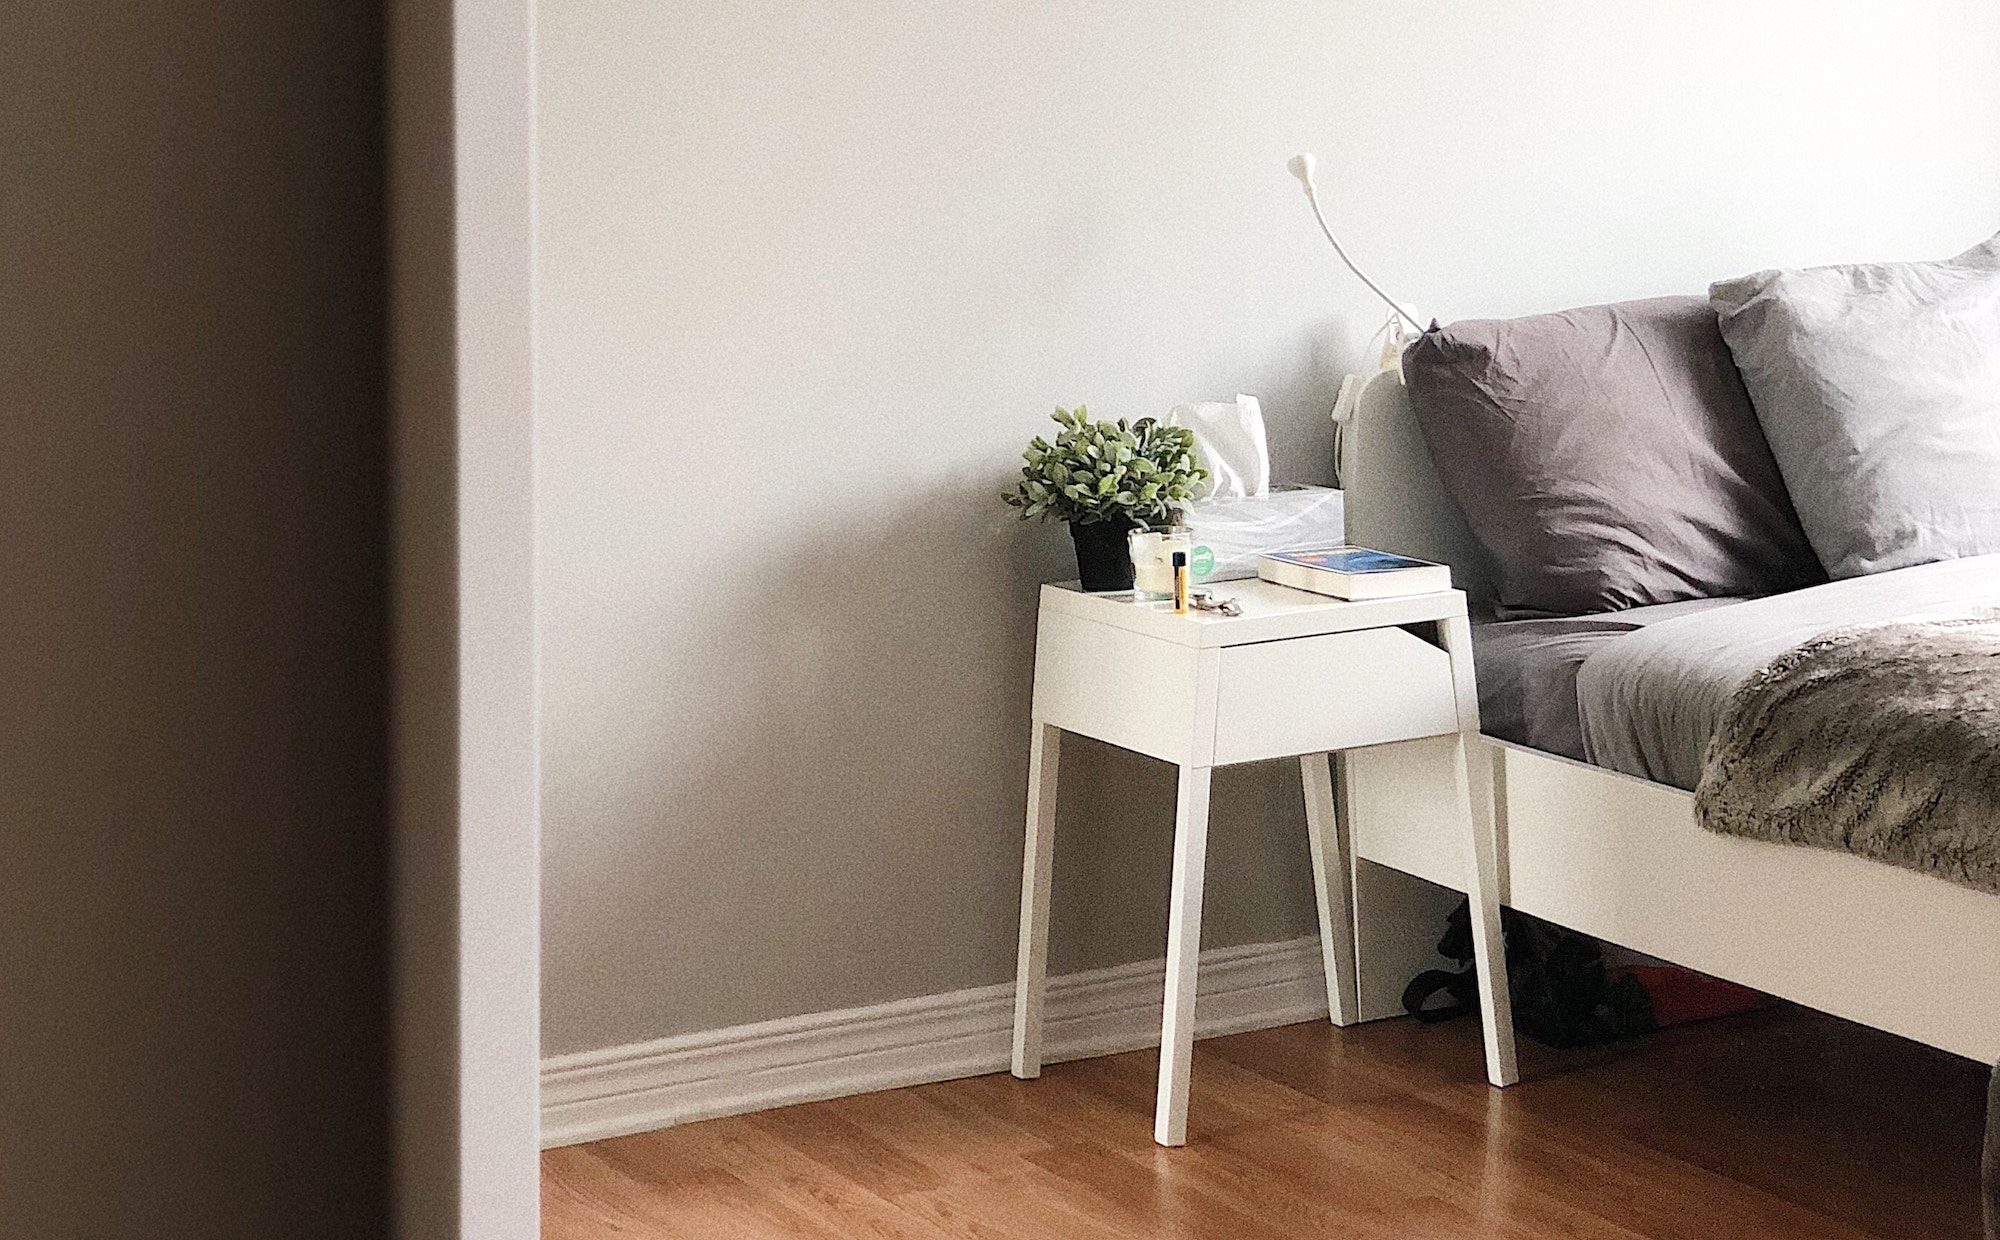 Can You Convert One Bedroom Into Two in Your Condo?